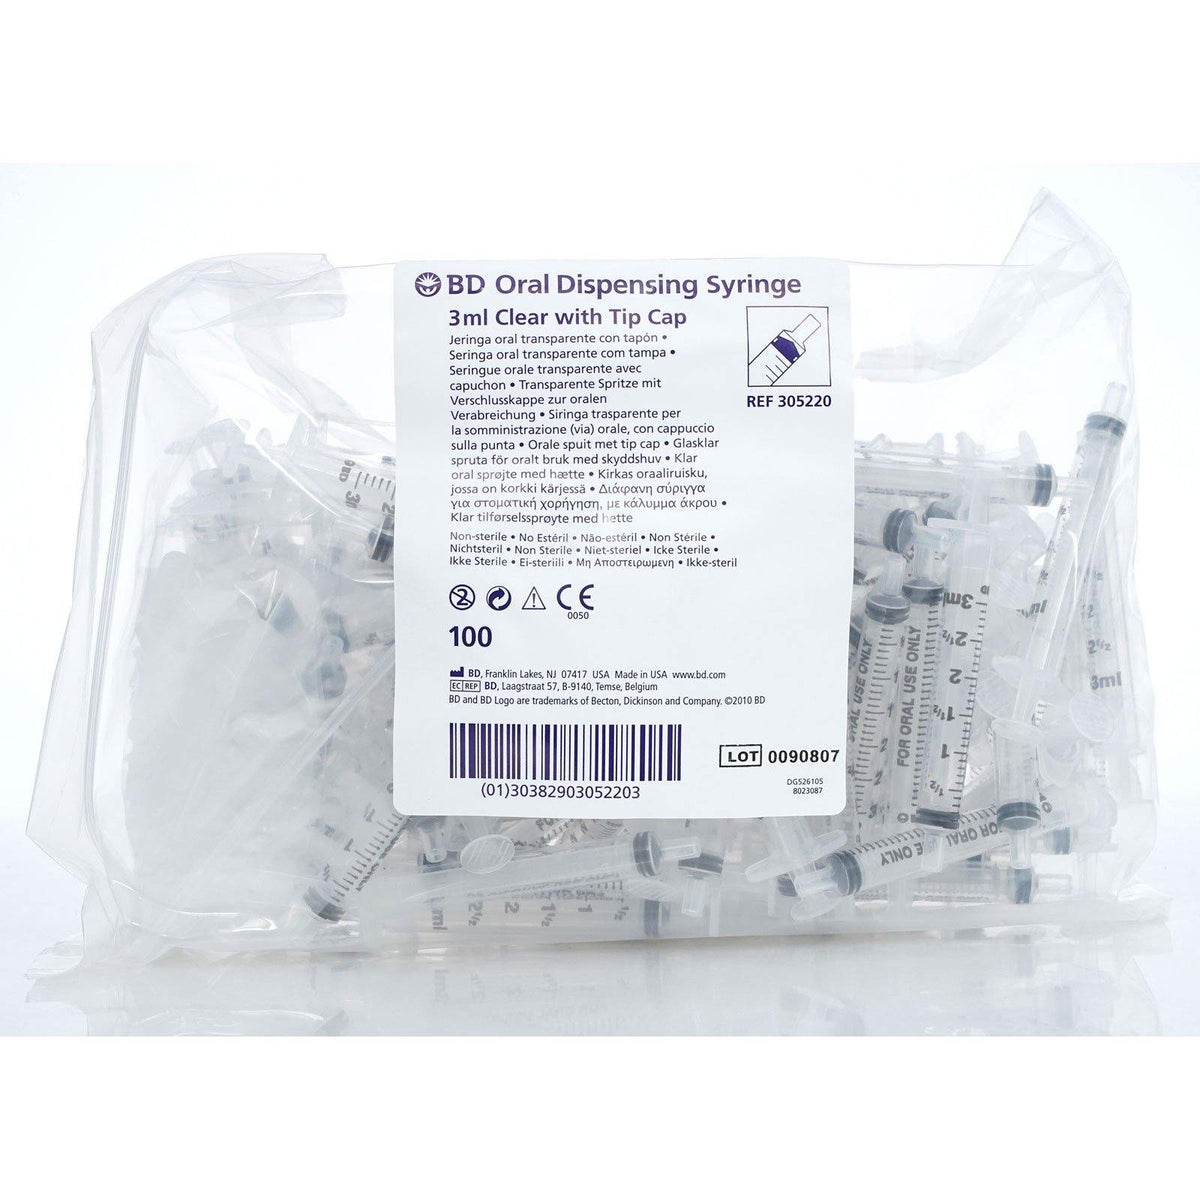 BD Oral Dispensing Syringe 3 ml Clear with Tip Cap (305220) (5/cs)